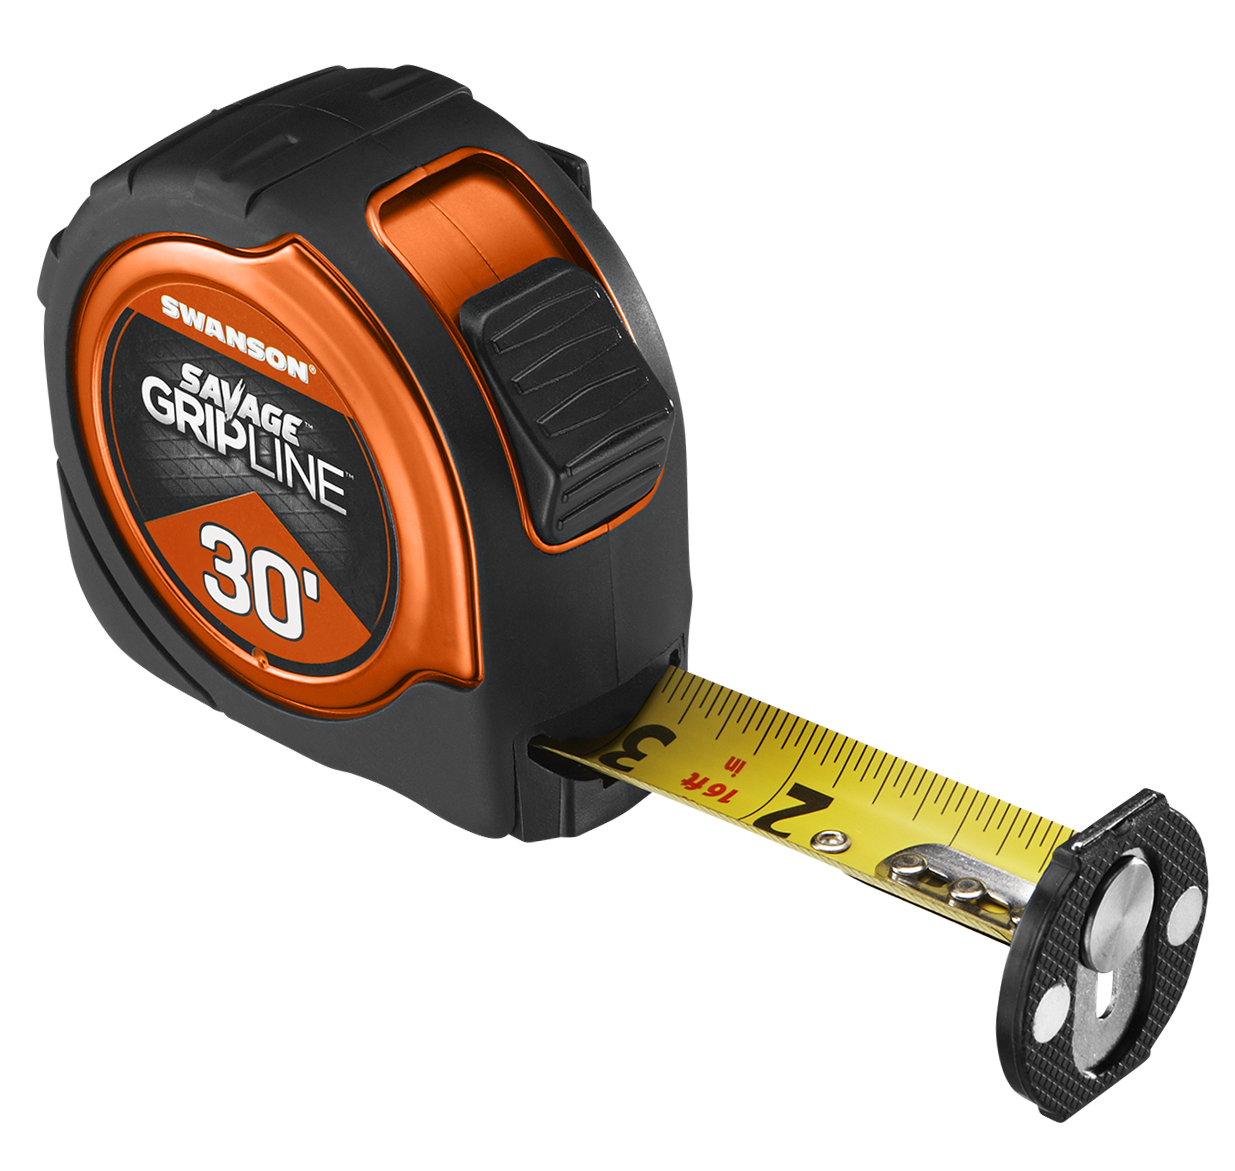 30' Magnetic Savage Grip Line Tape Measure